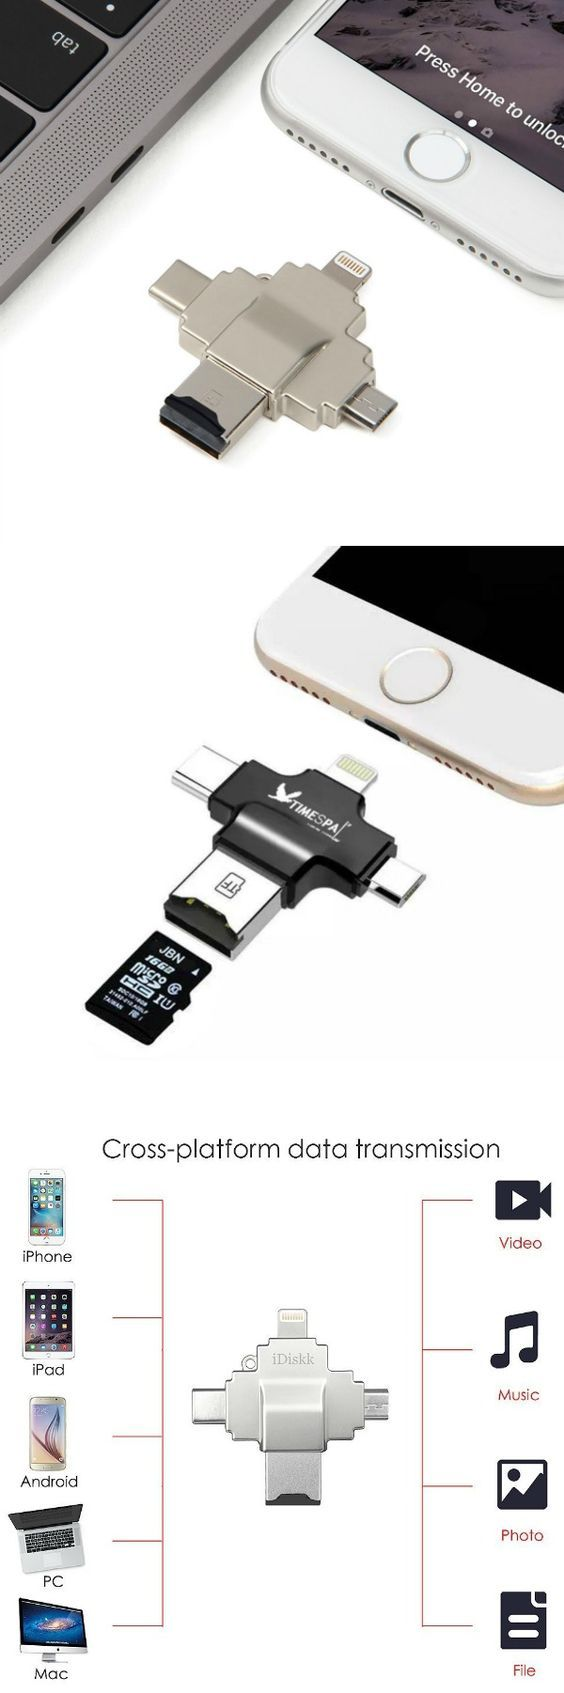 iDiskk High-Speed Flash Drive and Card Reader with Lightning&USB-C&Micro-USB Ports For iPhone, iPad, Galaxy, Nexus 5x6p, Pixel, Chromebook, Macbook Pro @aegisgears